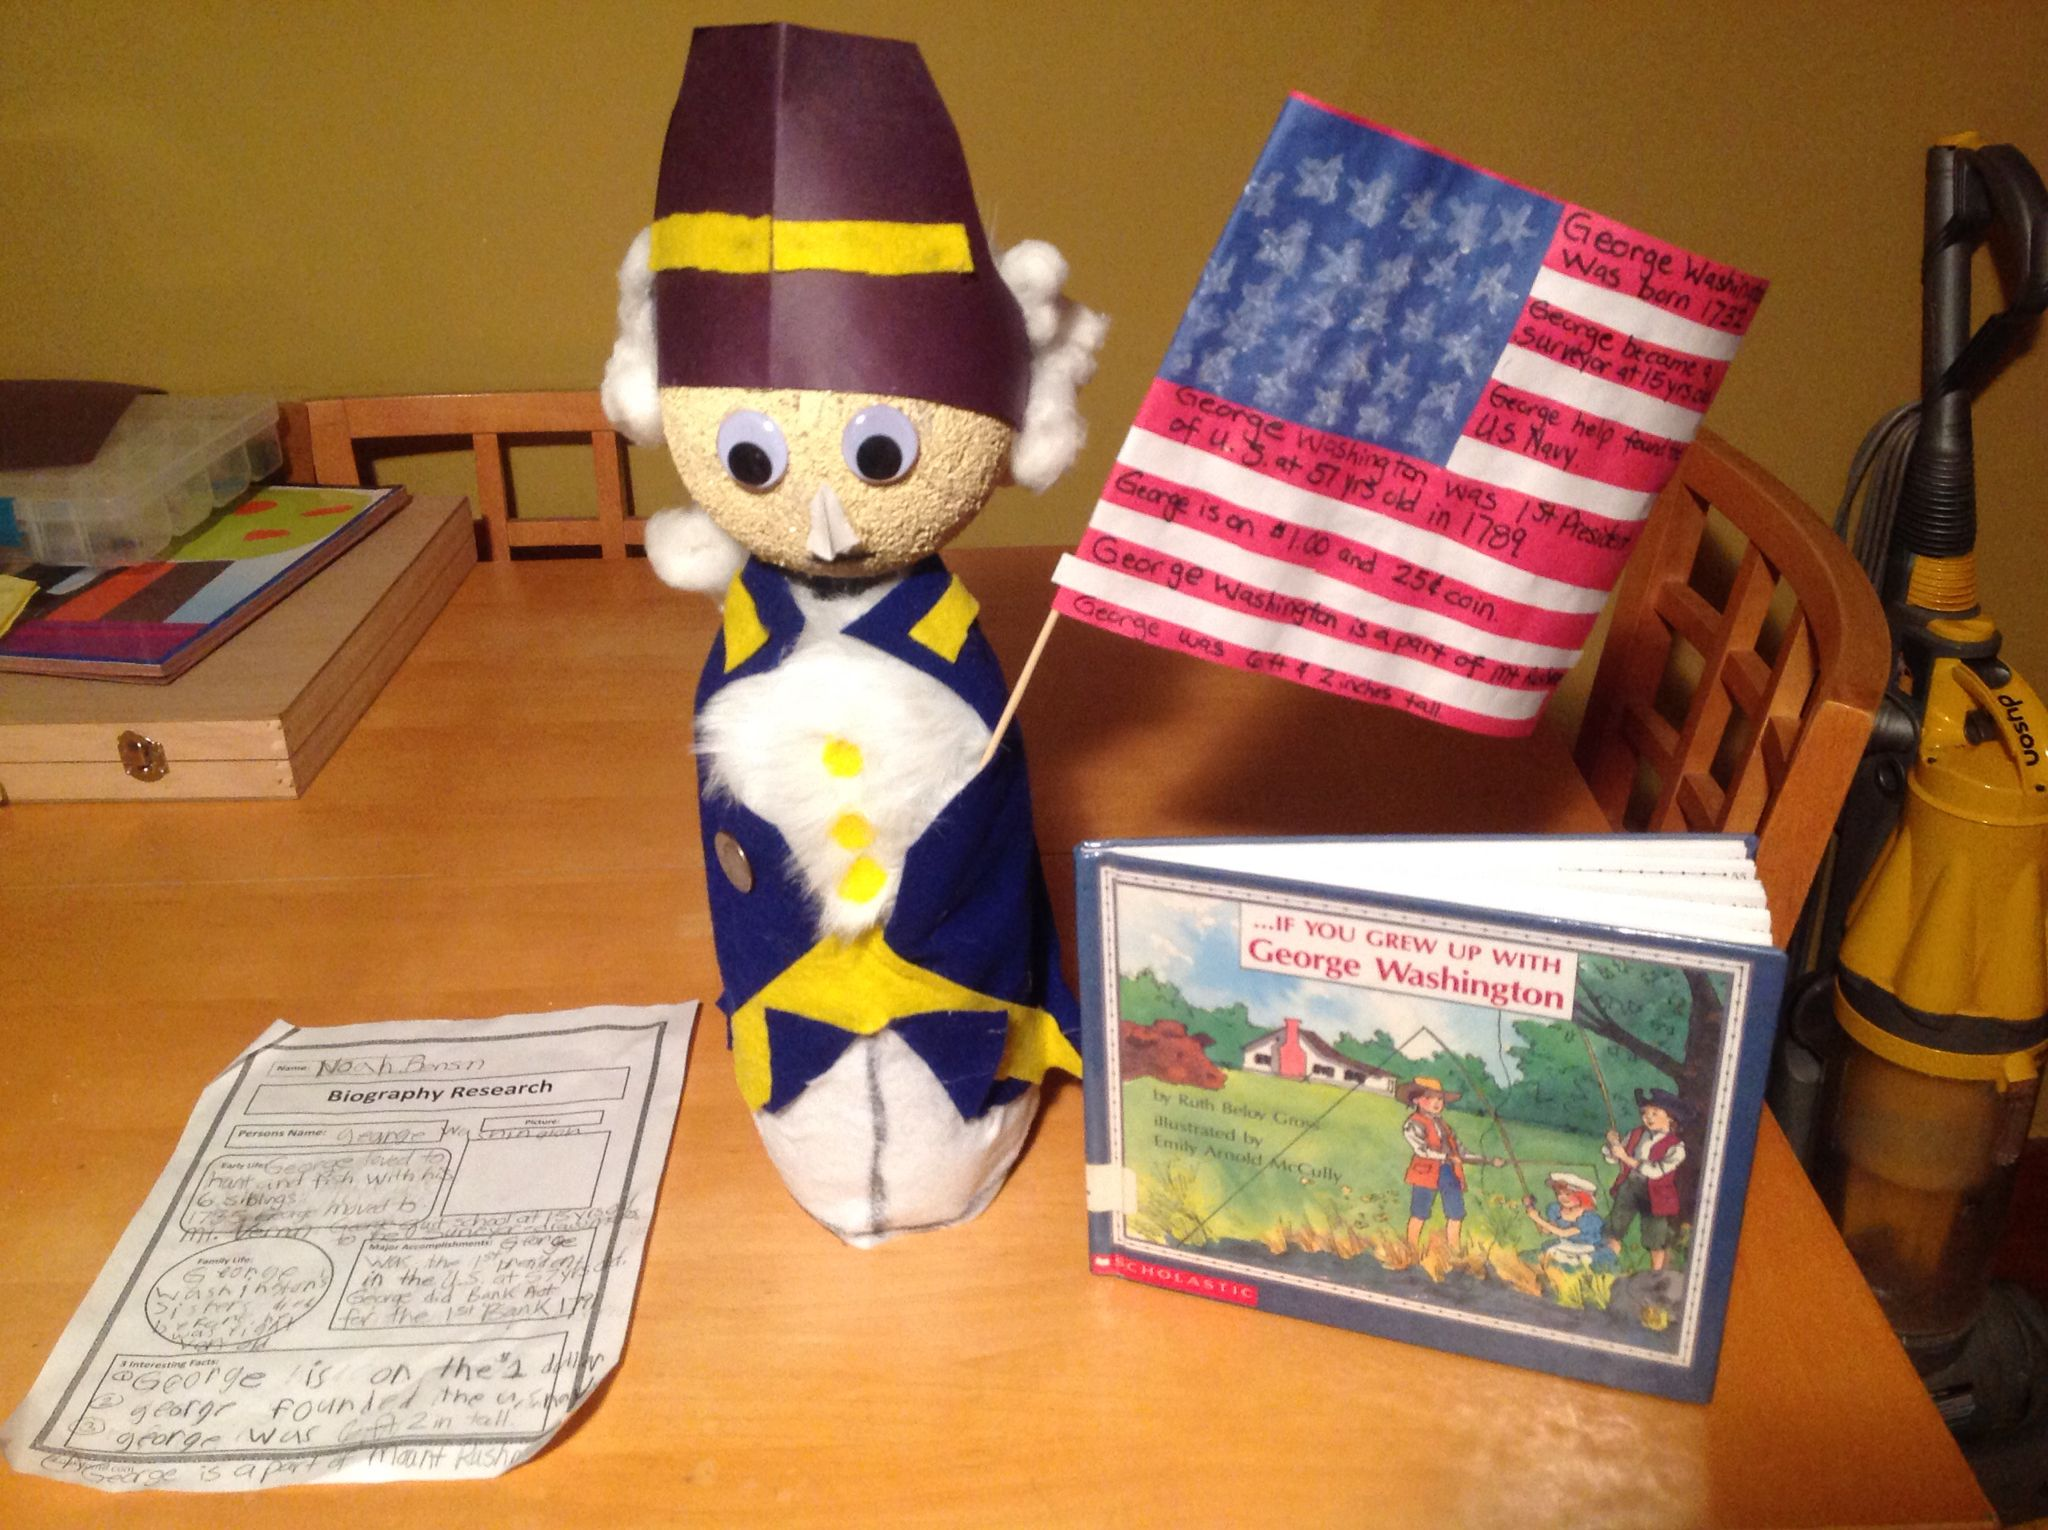 george washington president biography bottle rd grade project george washington president biography bottle 3rd grade project